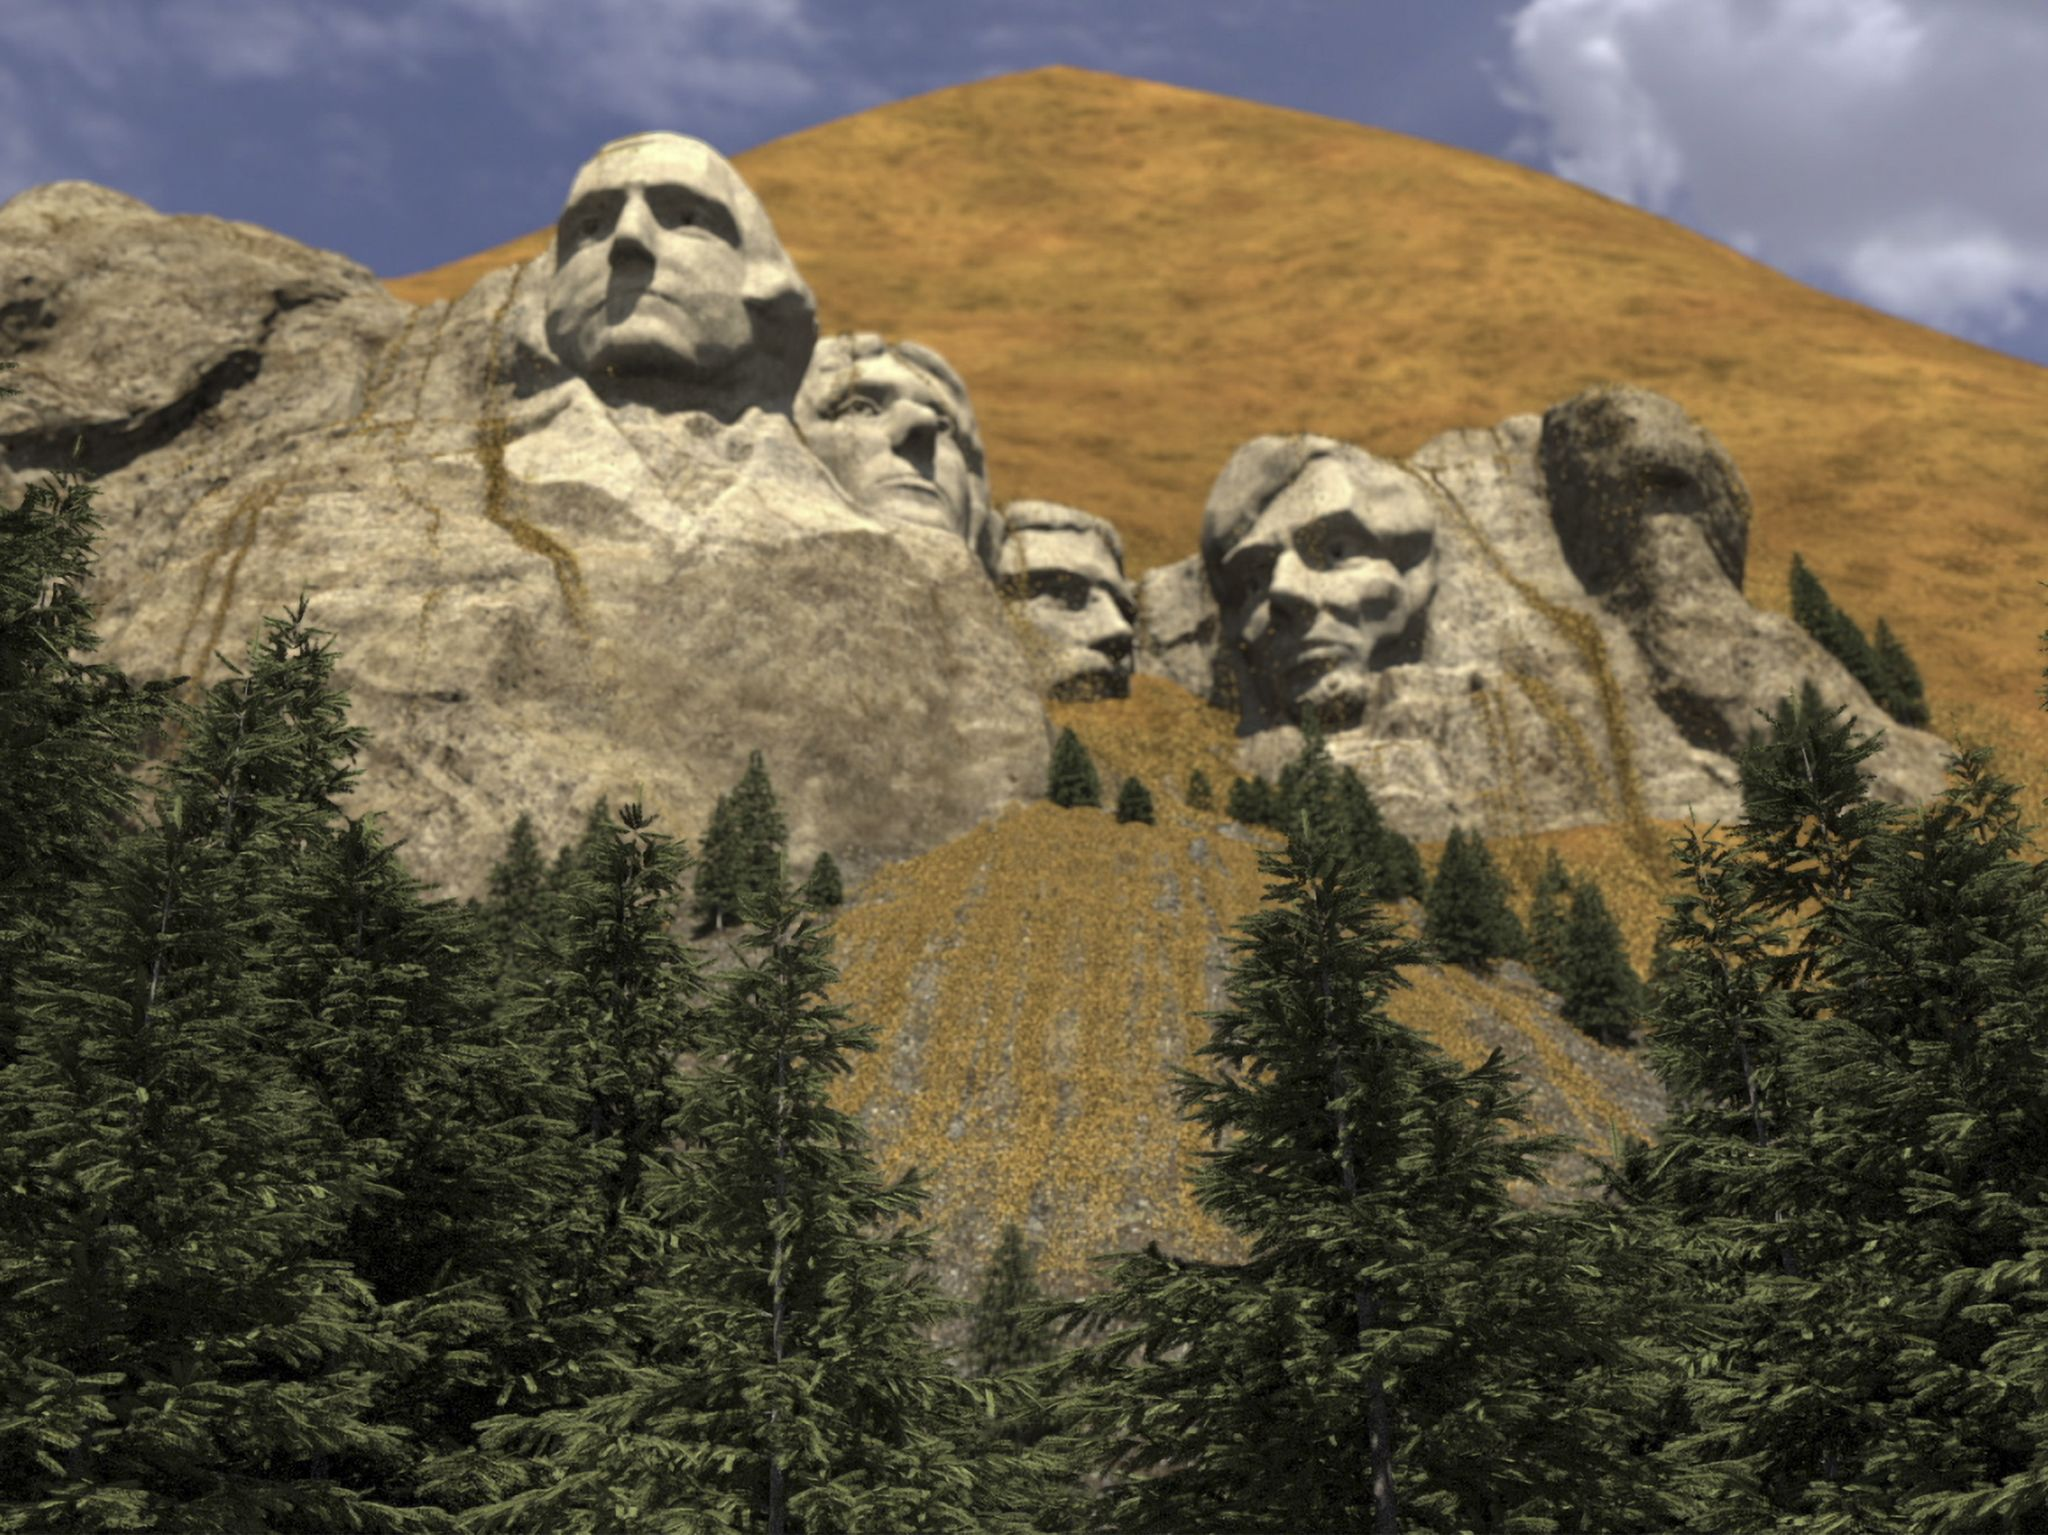 CGI of Mount Rushmore covered in grain. This image is from Made In A Day: Tractors. [Photo of the day - August 2020]